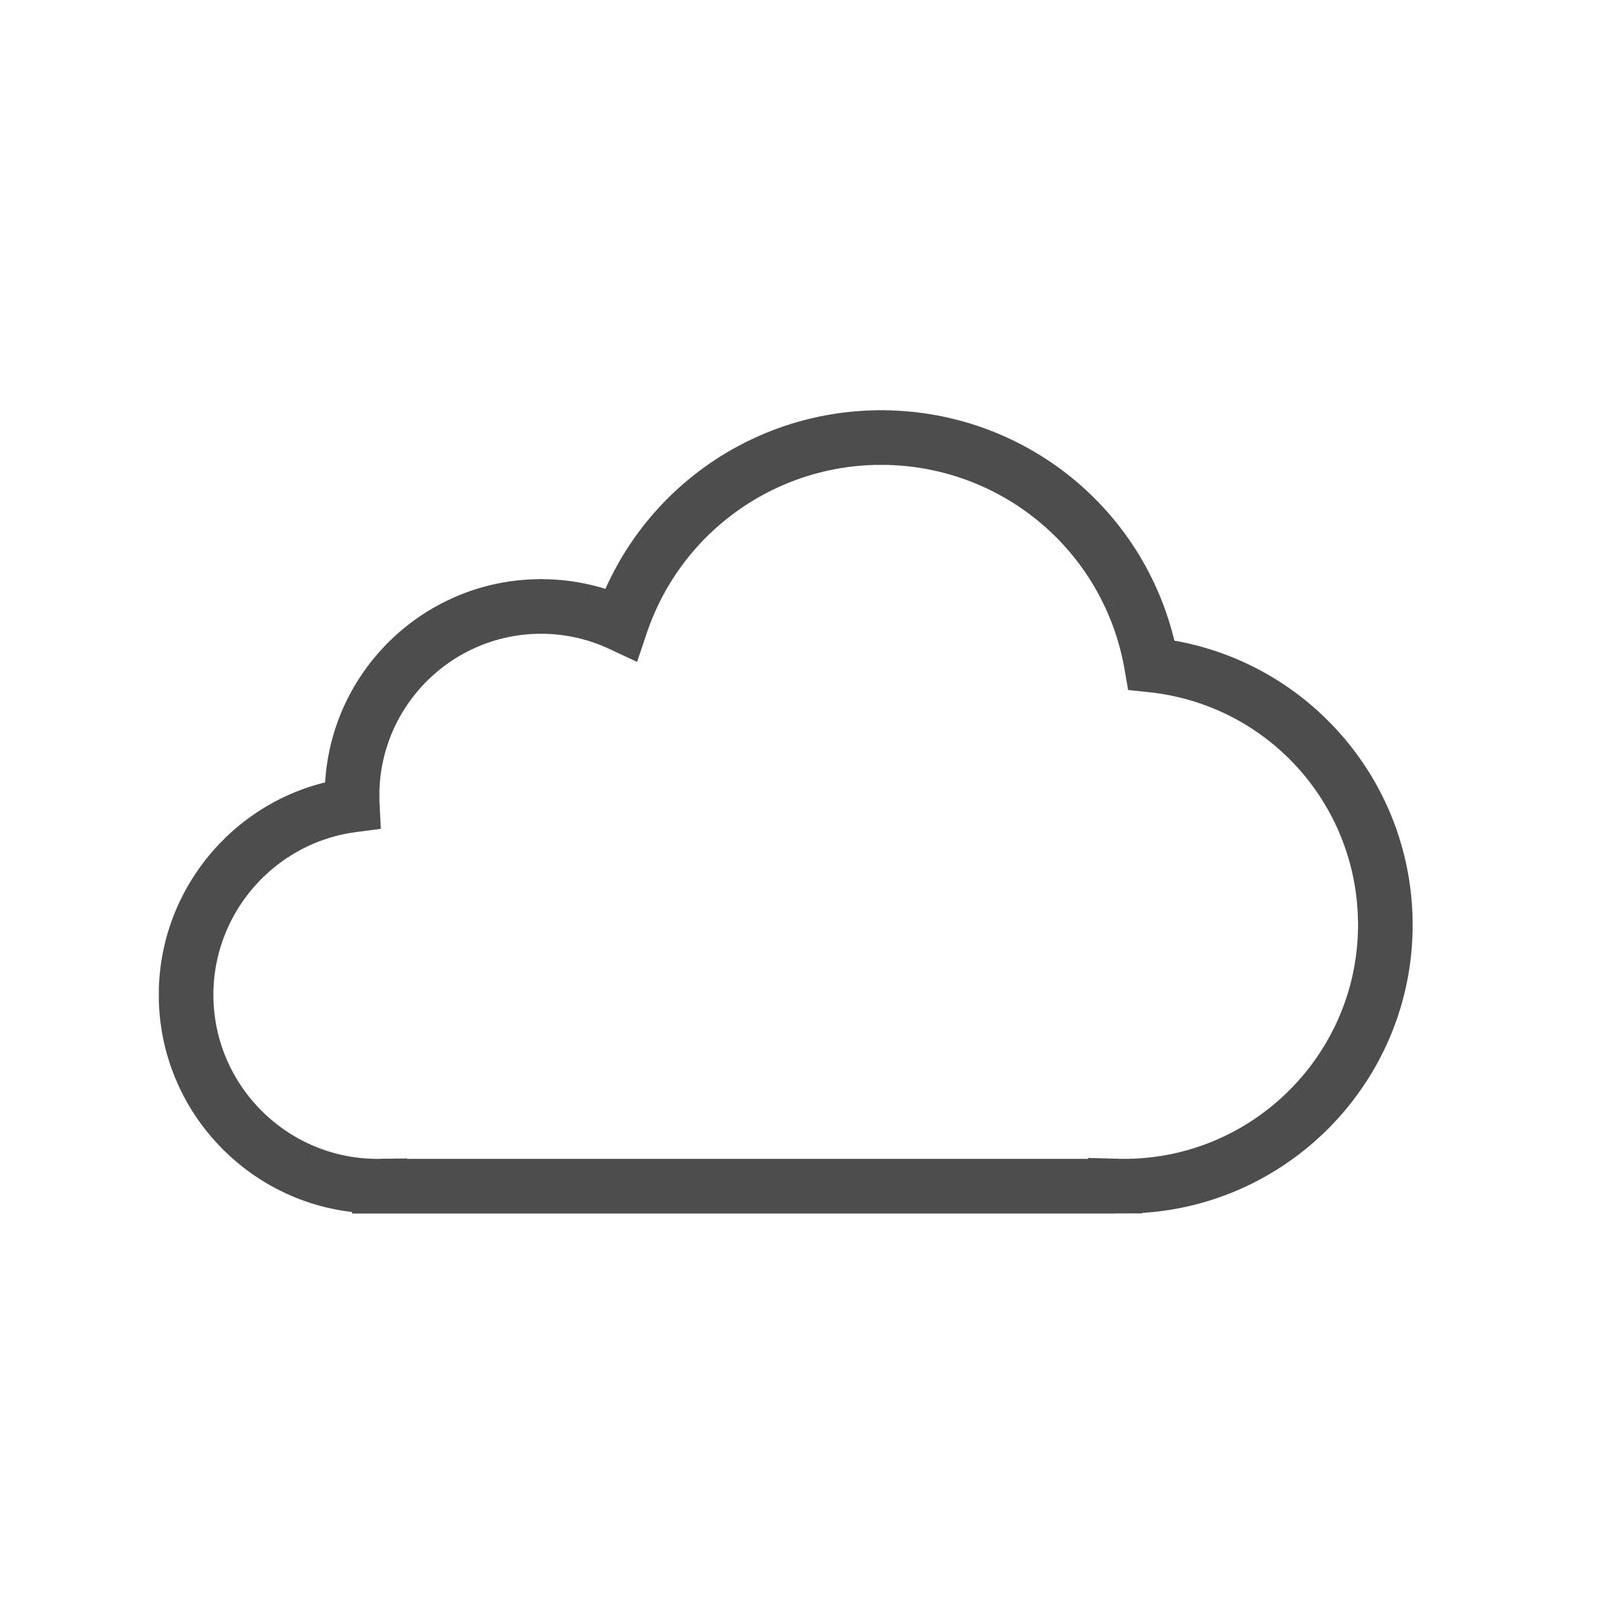 Cloud-based - Access the Specsy platform through any wifi connected device.